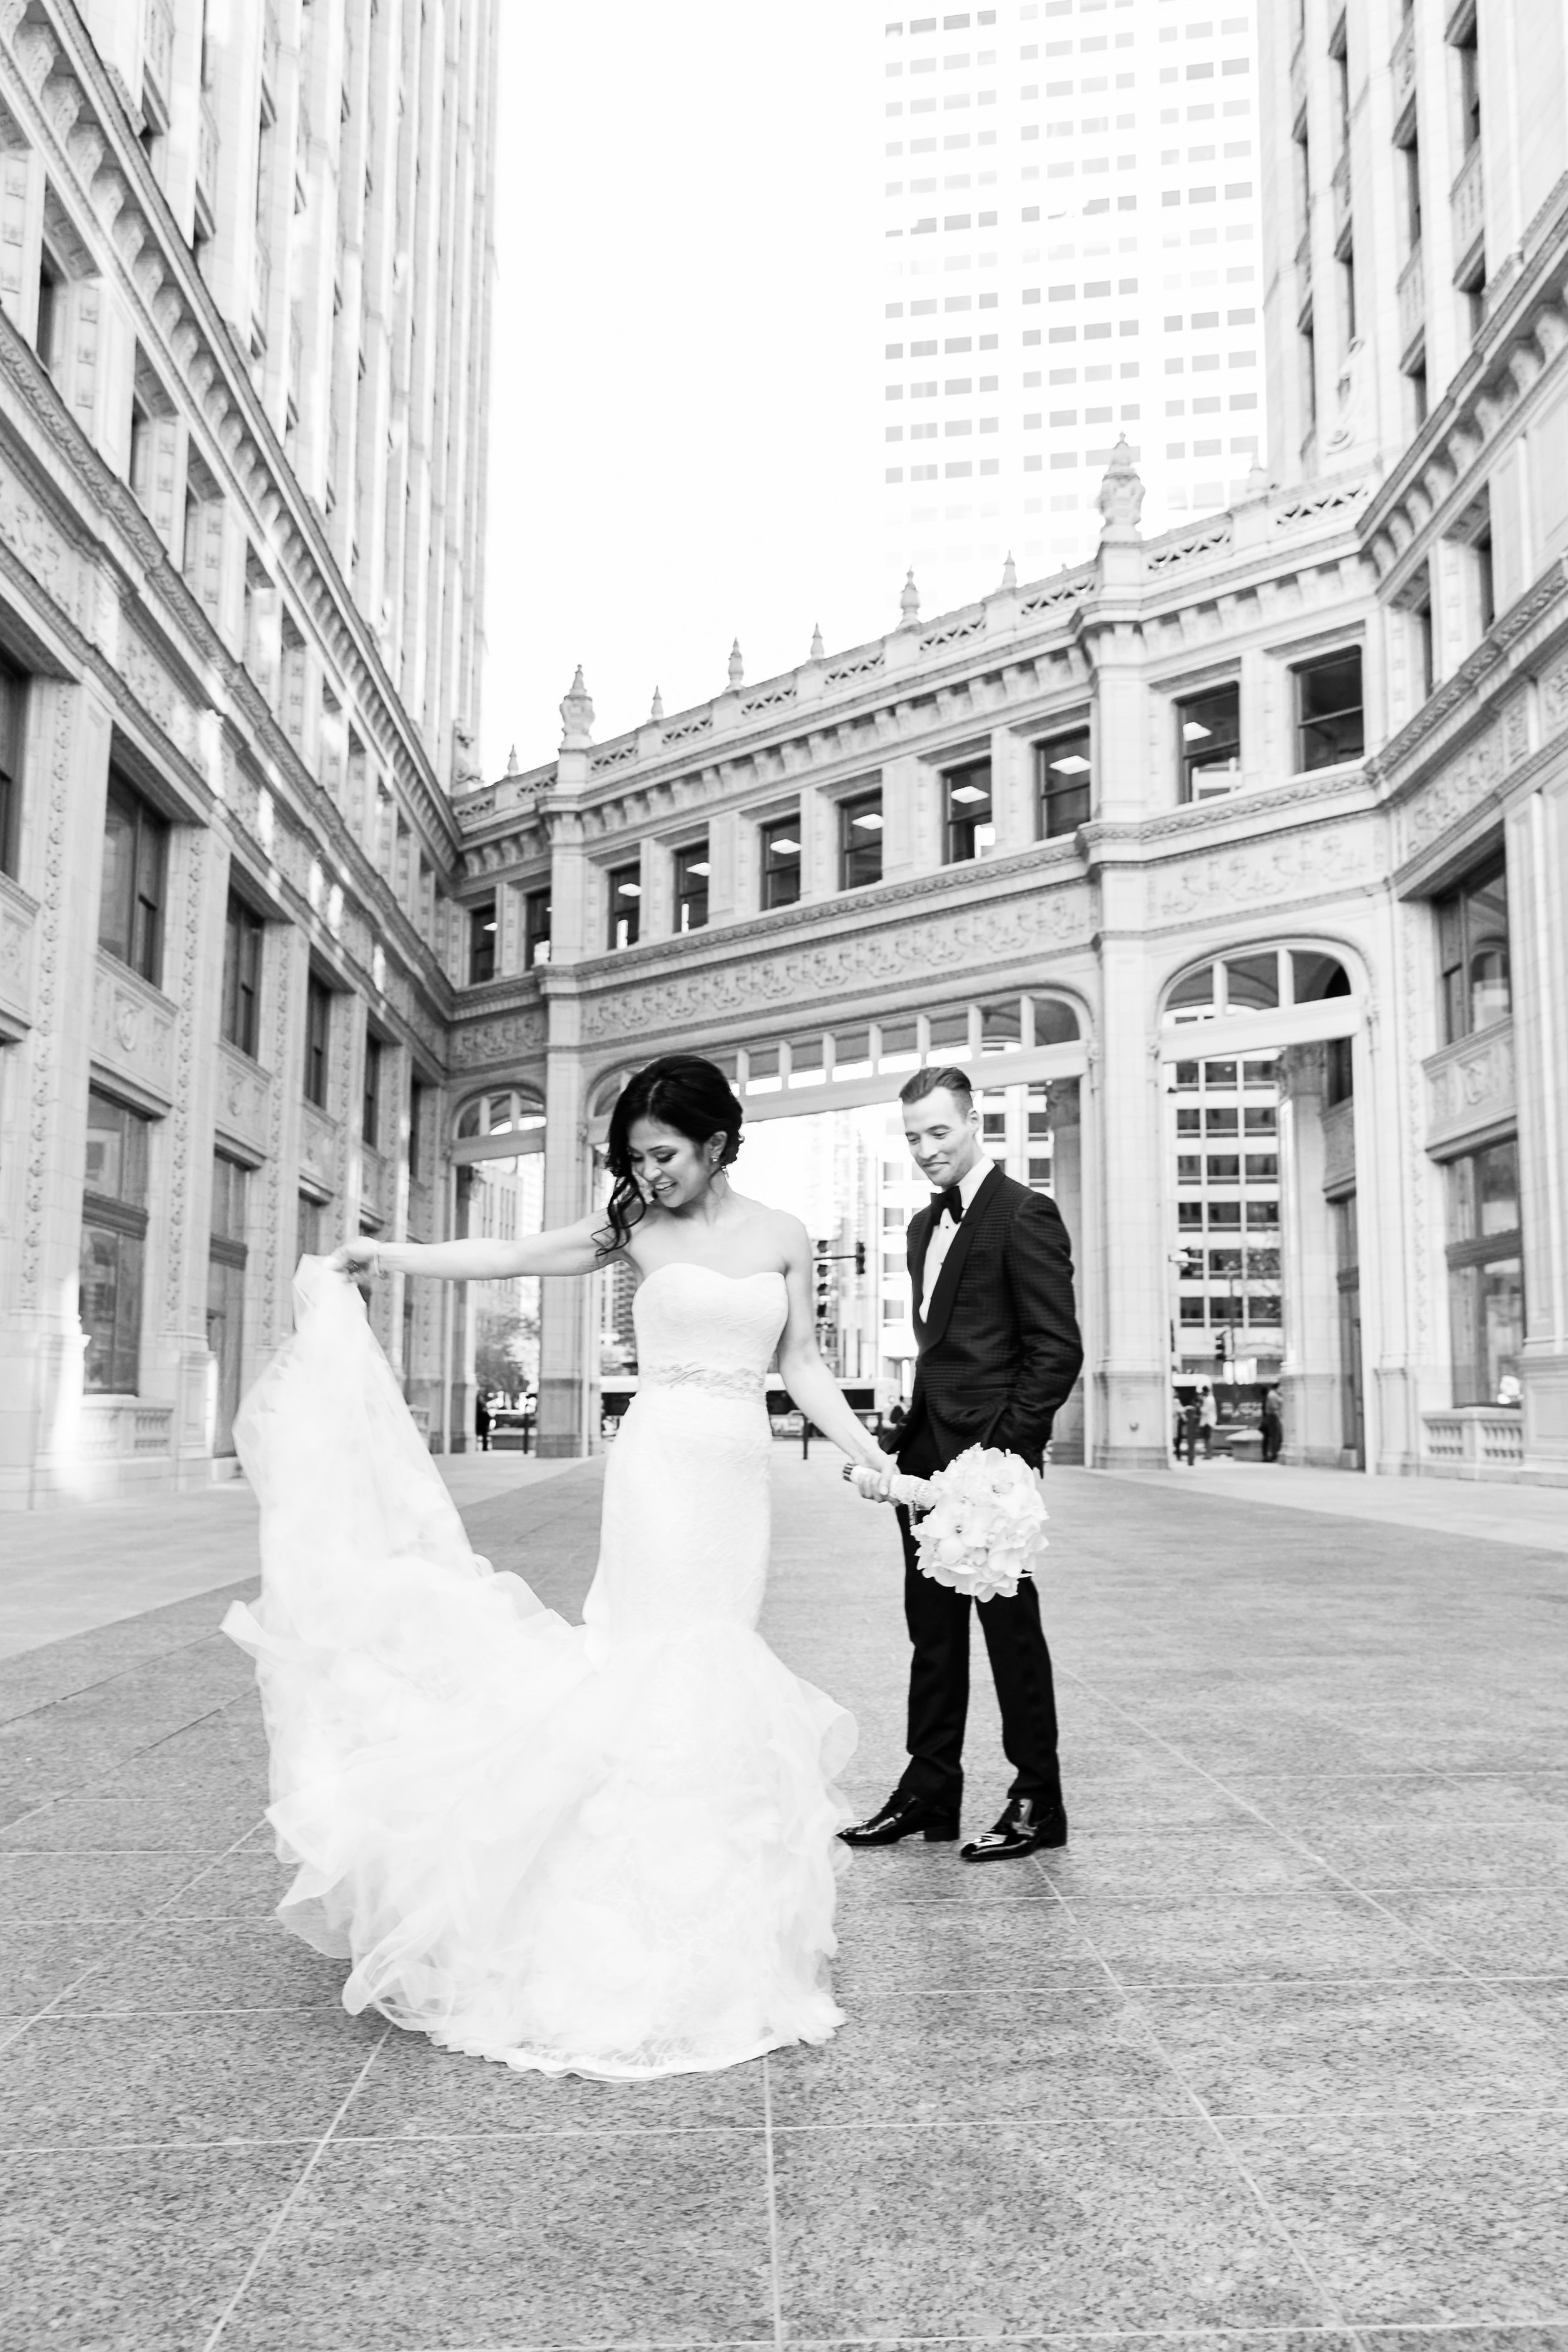 Editorial wedding photos at the Wrigley Building in Chicago.